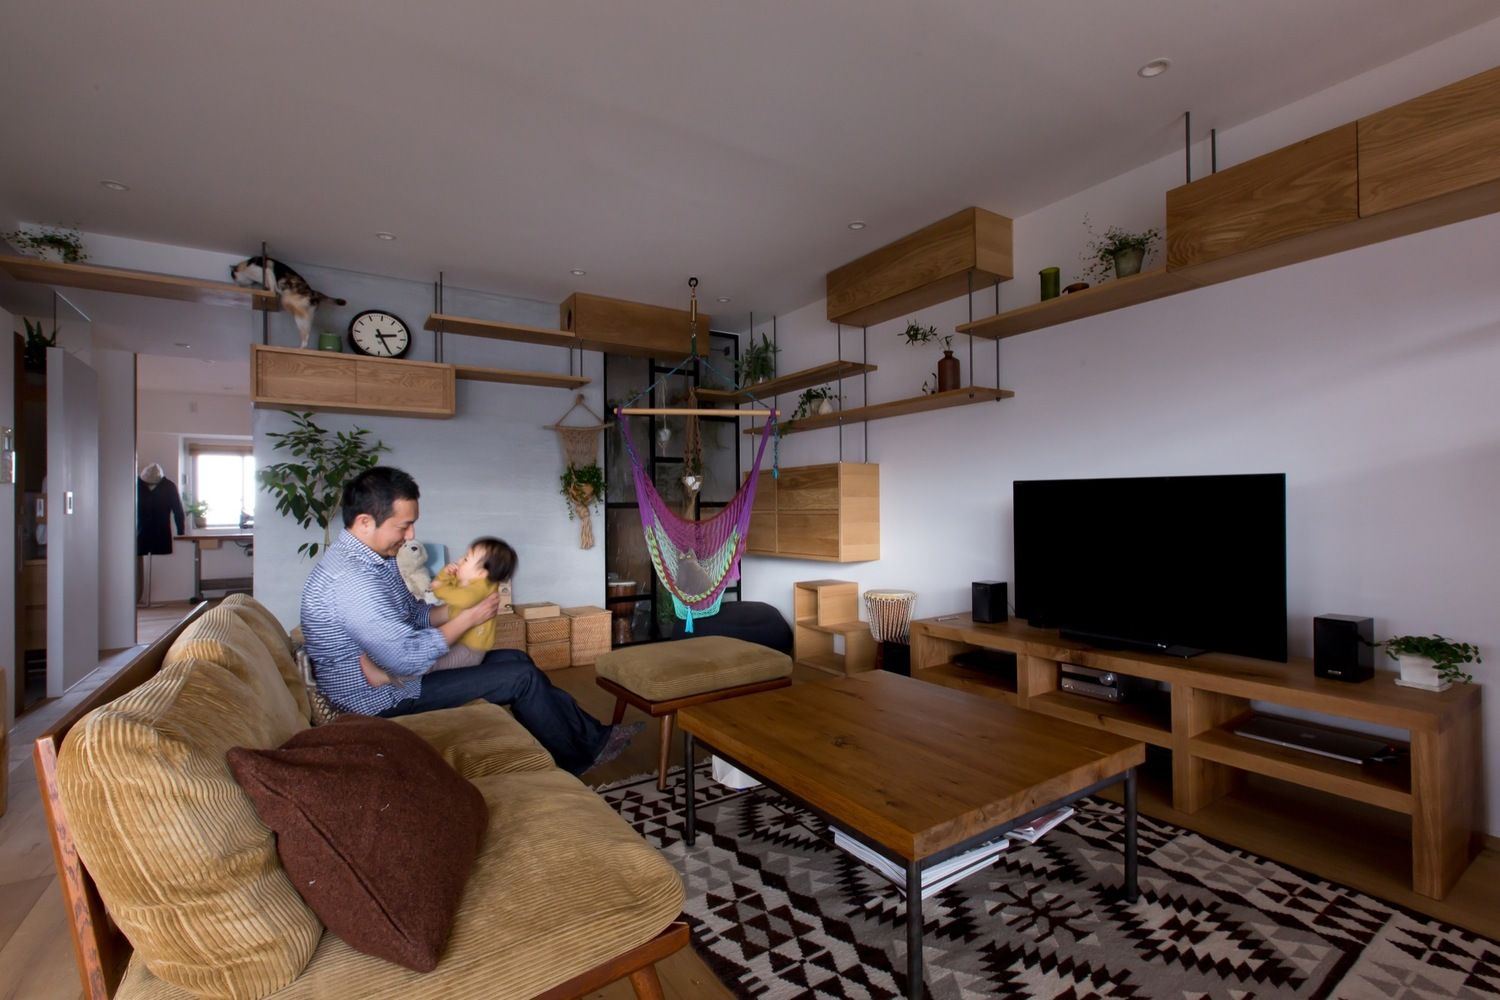 Uncategorized Cat Walkway In House gallery of nionohama apartment house renovation alts design office 4